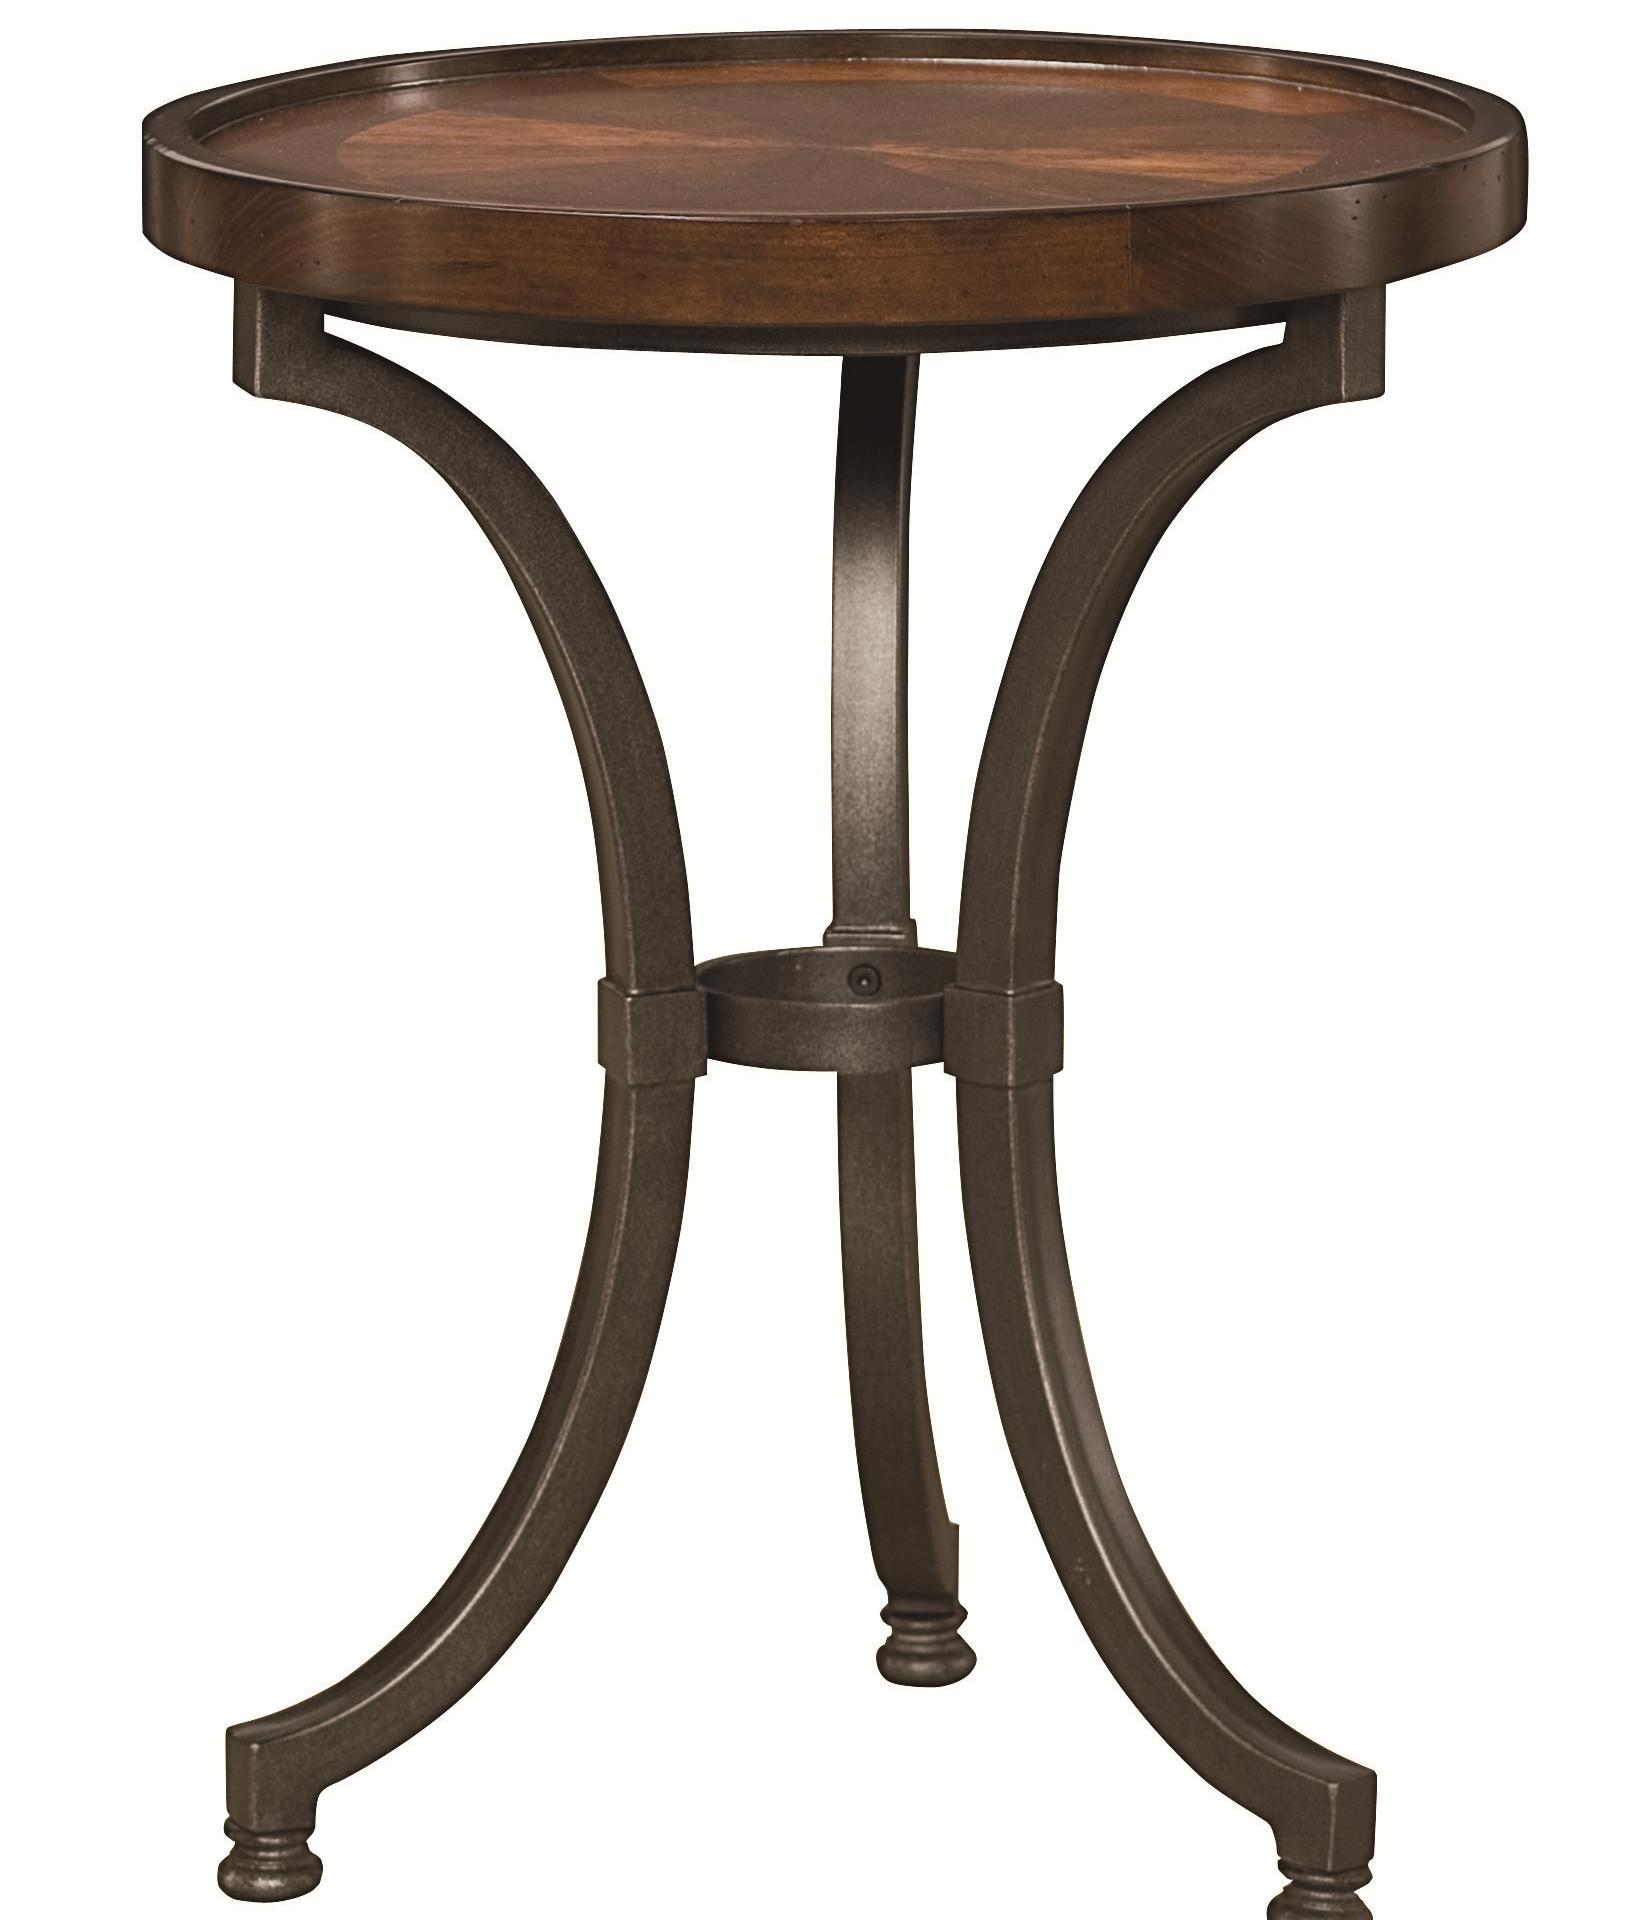 Hammary Barrow Round Chairside Table - Item Number: 358-916